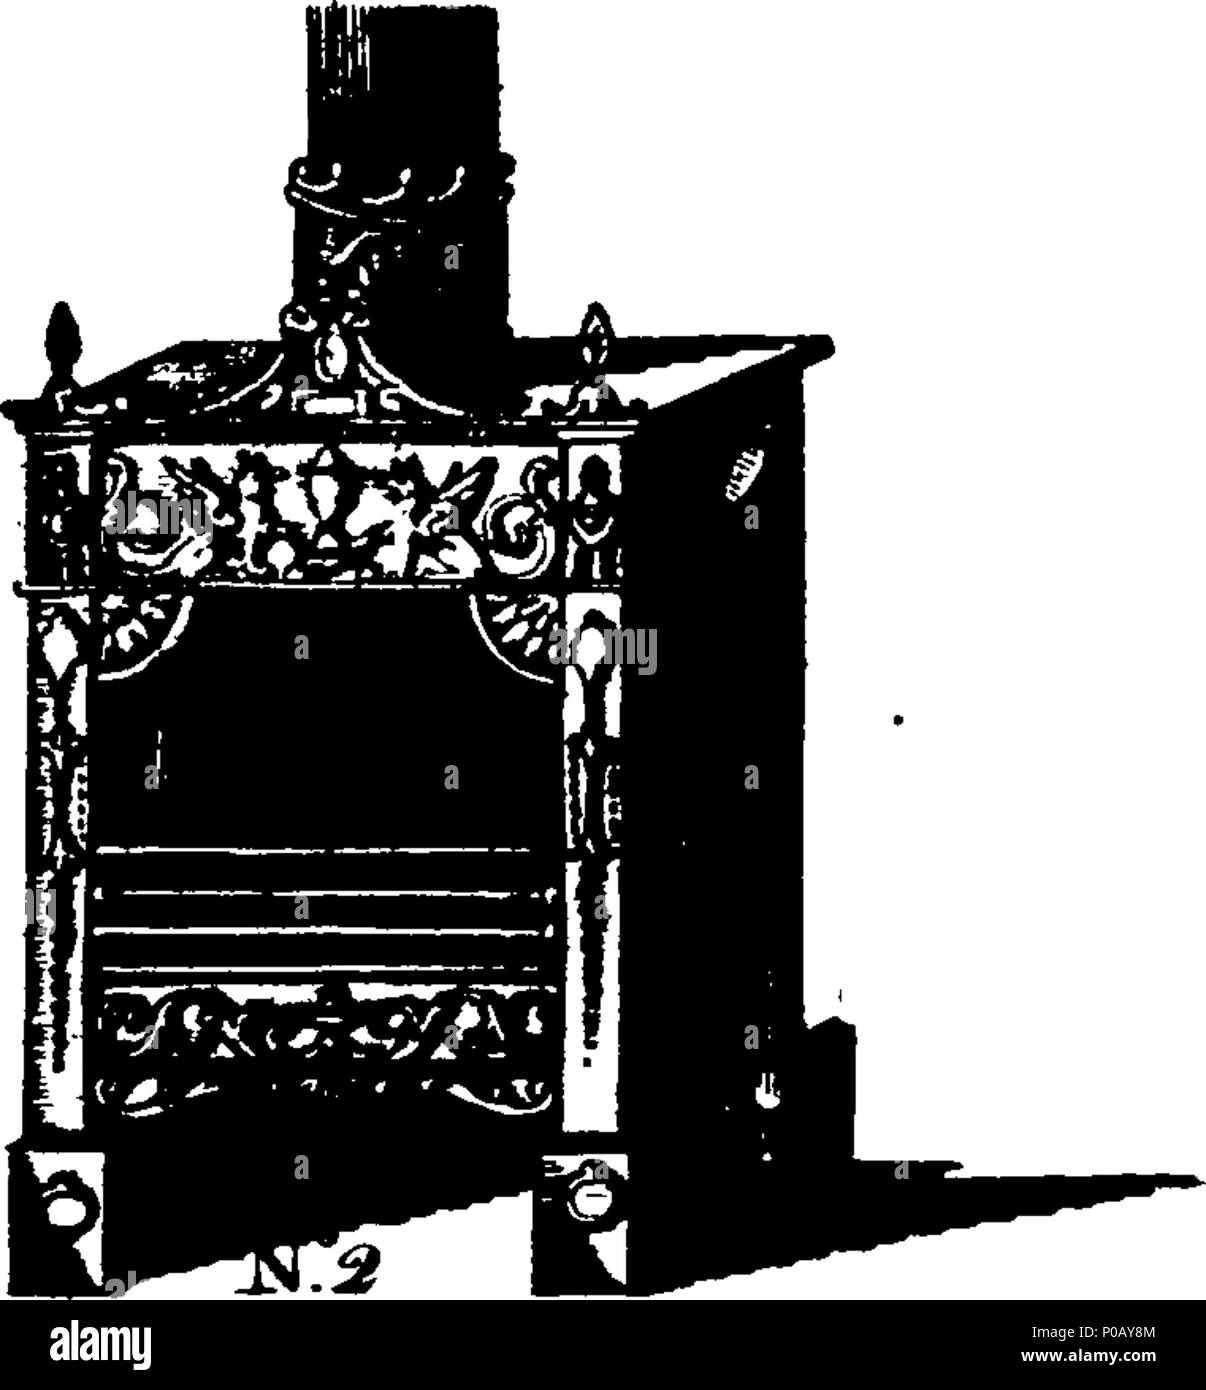 . English: Fleuron from book: An account of the principle and effects of the air stove-grates, (which warm Rooms, &c. by a continual Introduction and Exchange of dry fresh Air,) Commonly known by the Name of American Stoves: together with a description of the late additions and improvements made to them By James Sharp, (for which his Majesty's Patents for Great-Britain are obtained,) No. 15, Leadenhall-Street, London. Either warm or cold Air may (by this Improvement) be drawn through the Stove so as to raise or lower the Thermometer at Pleasure: And, it is found by Experience, if a Room be mad - Stock Image